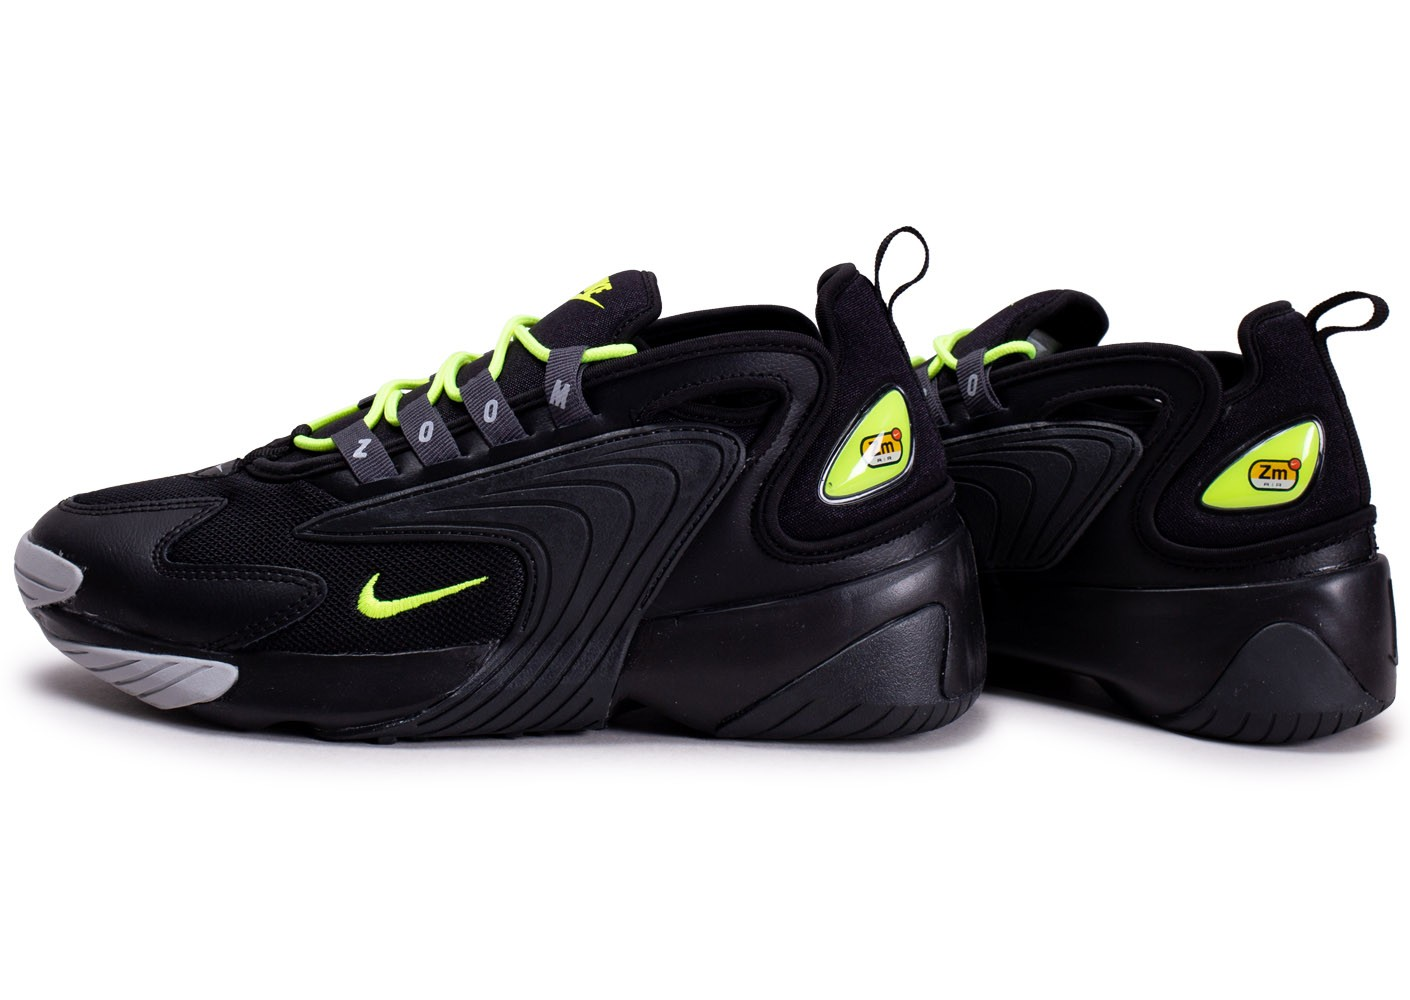 Nike Zoom 2K noire et jaune fluo - Chaussures Baskets homme ...